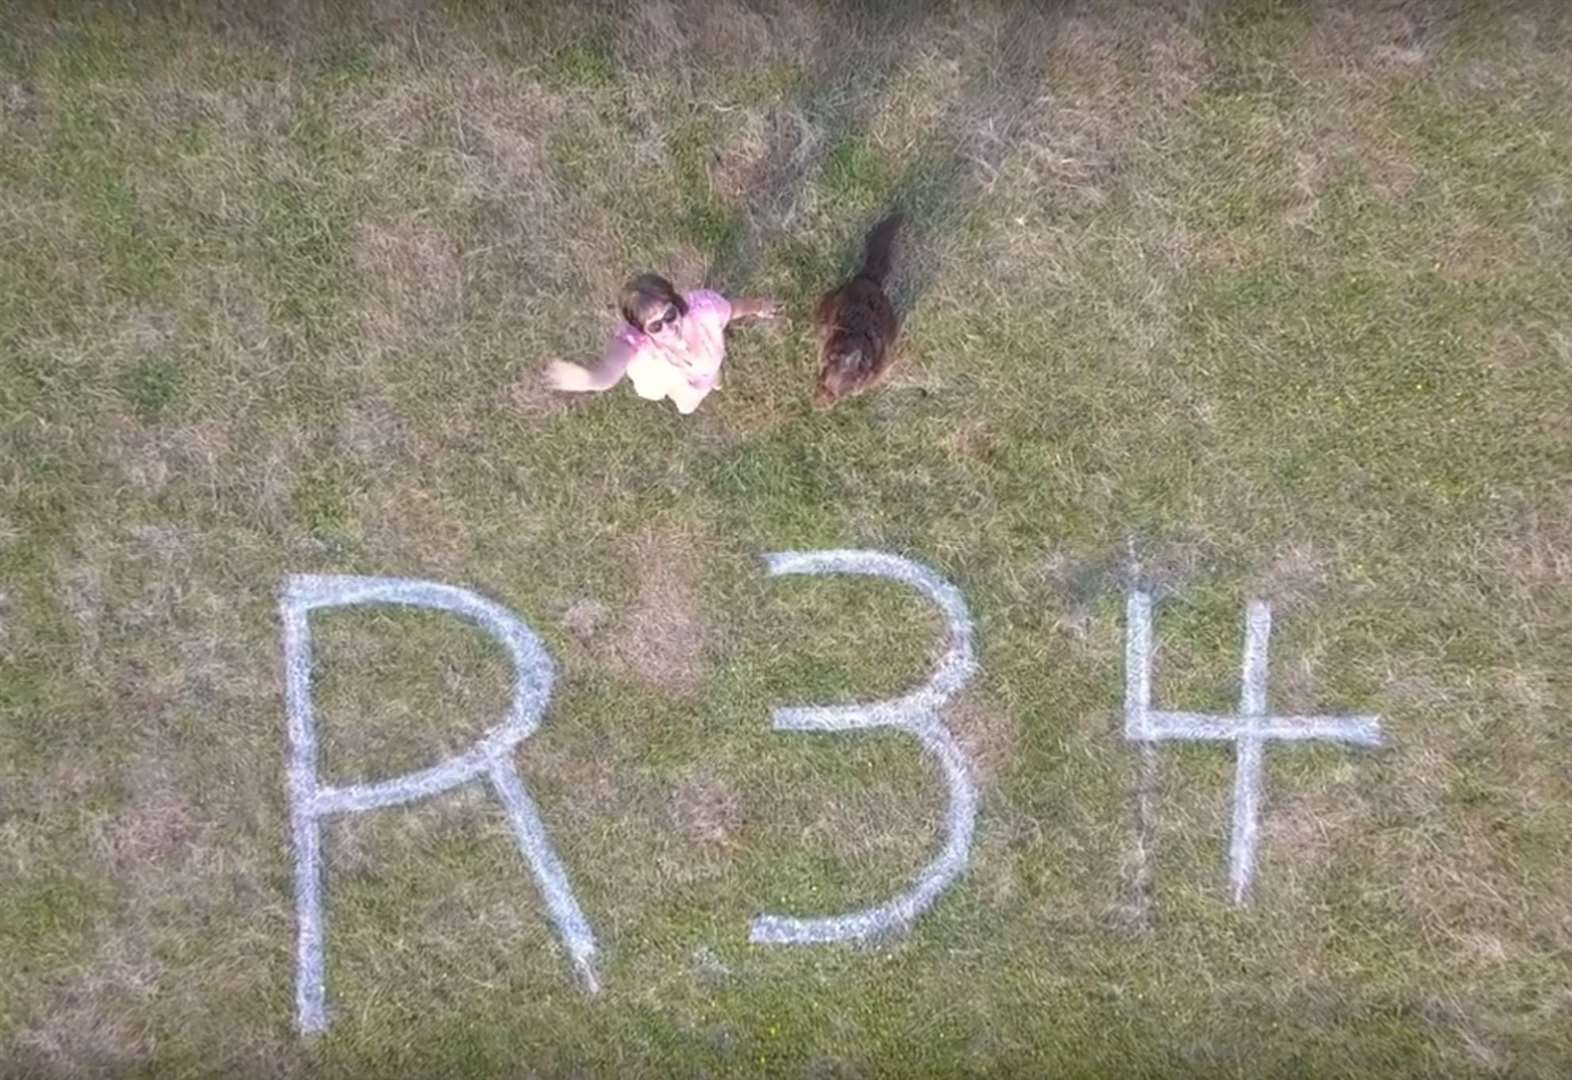 VIDEO: R34 celebrations put village on the map